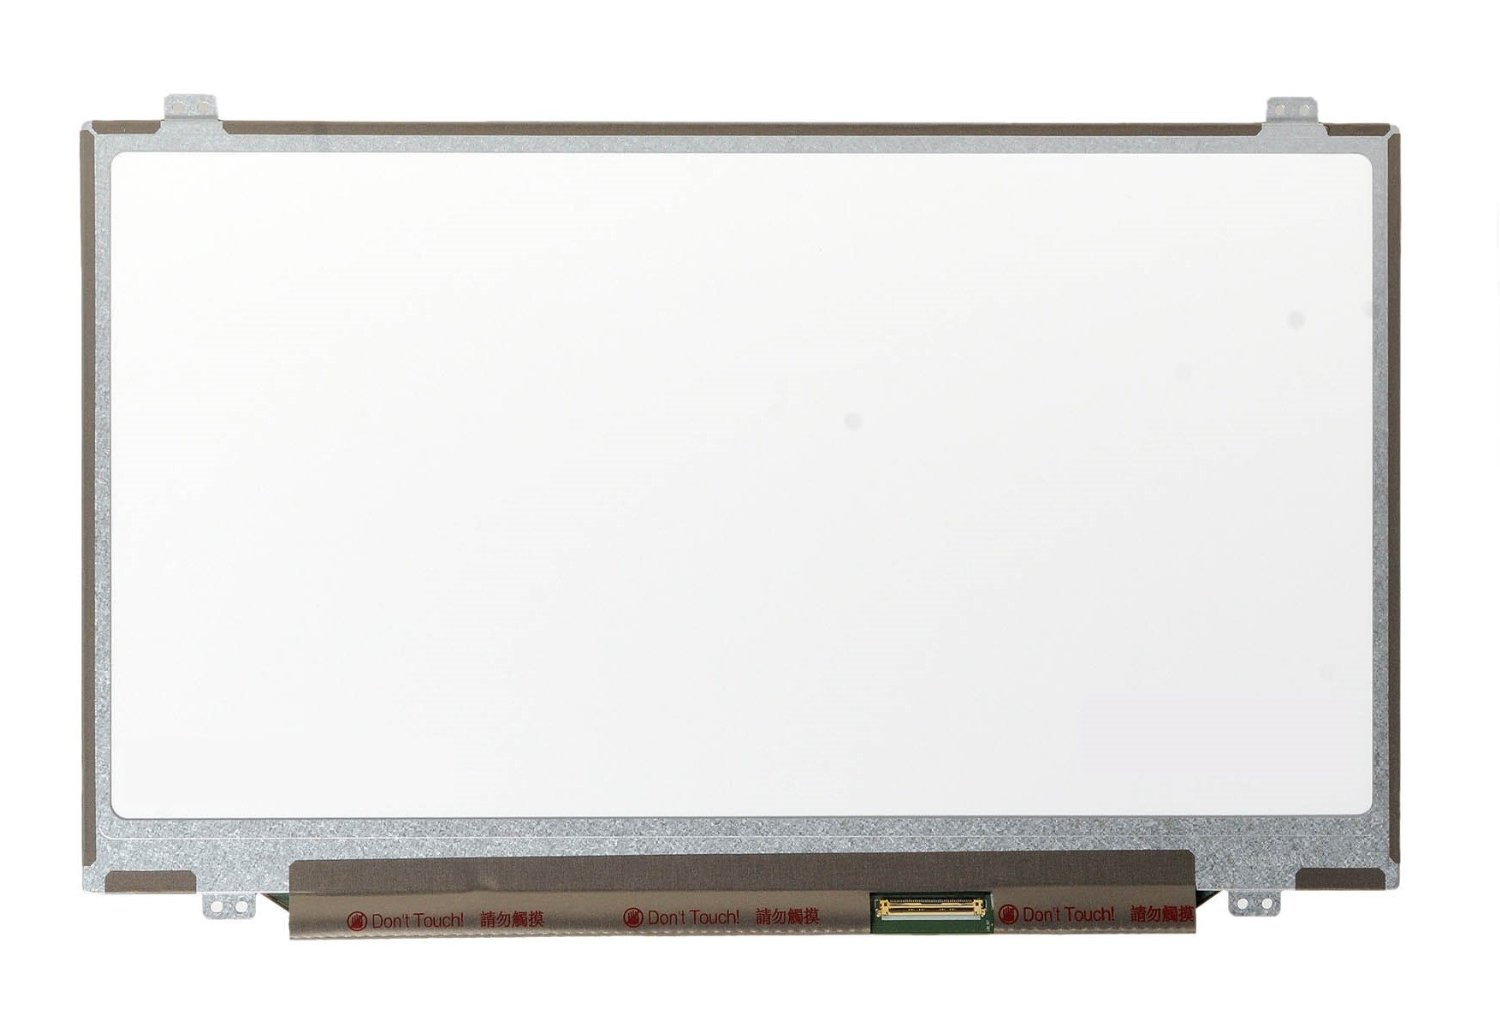 QuYing Laptop LCD Screen for Acer ASPIRE VN7-791G VN7-792G SERIES (17.3 inch 1920x1080 30pin N)